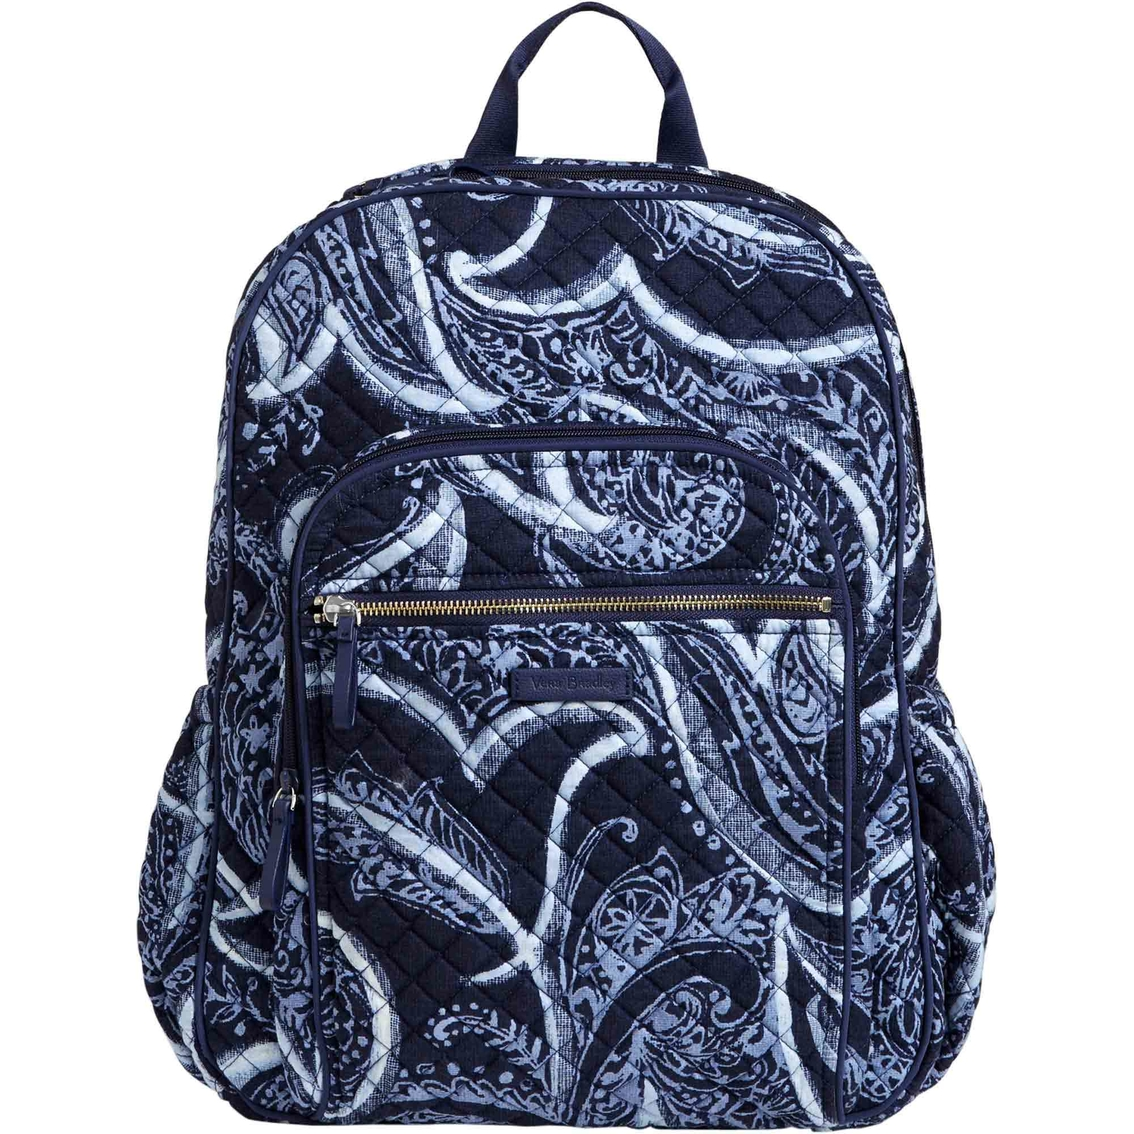 adfb28c87 Vera Bradley Iconic Campus Backpack, Indio | Shop By Pattern | Shop ...